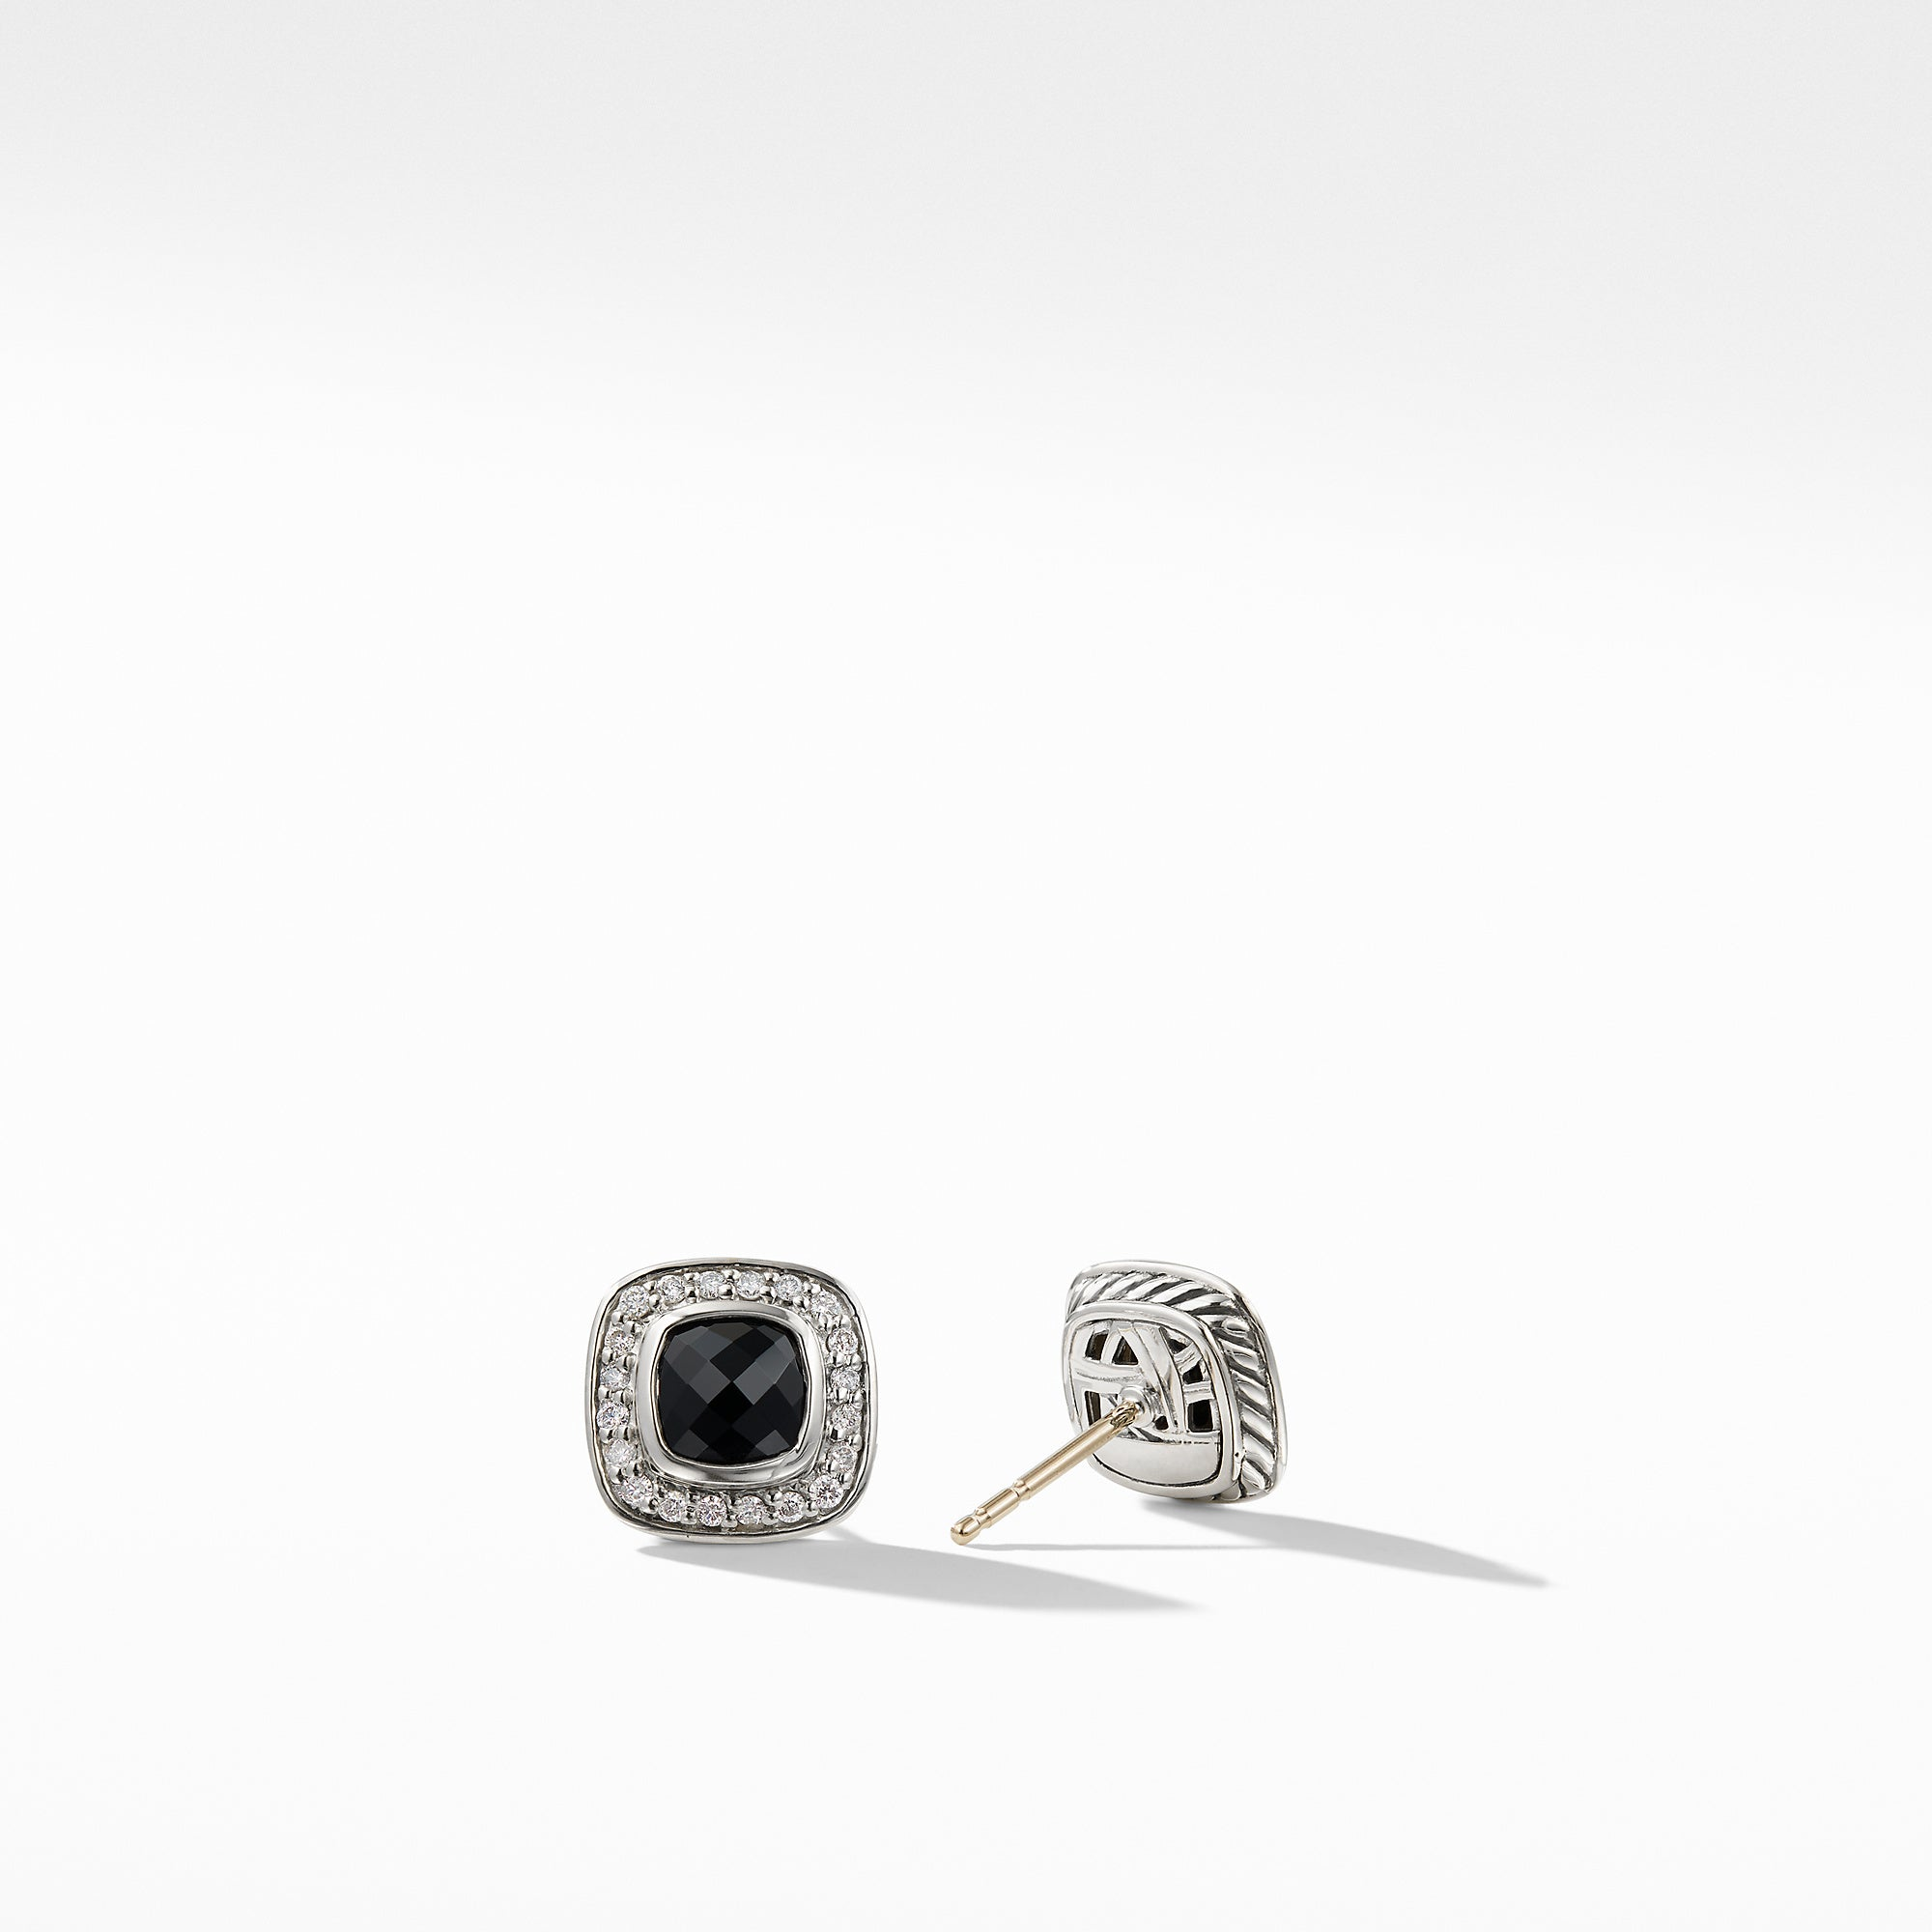 Petite Albion Earrings with Black Onyx and Diamonds